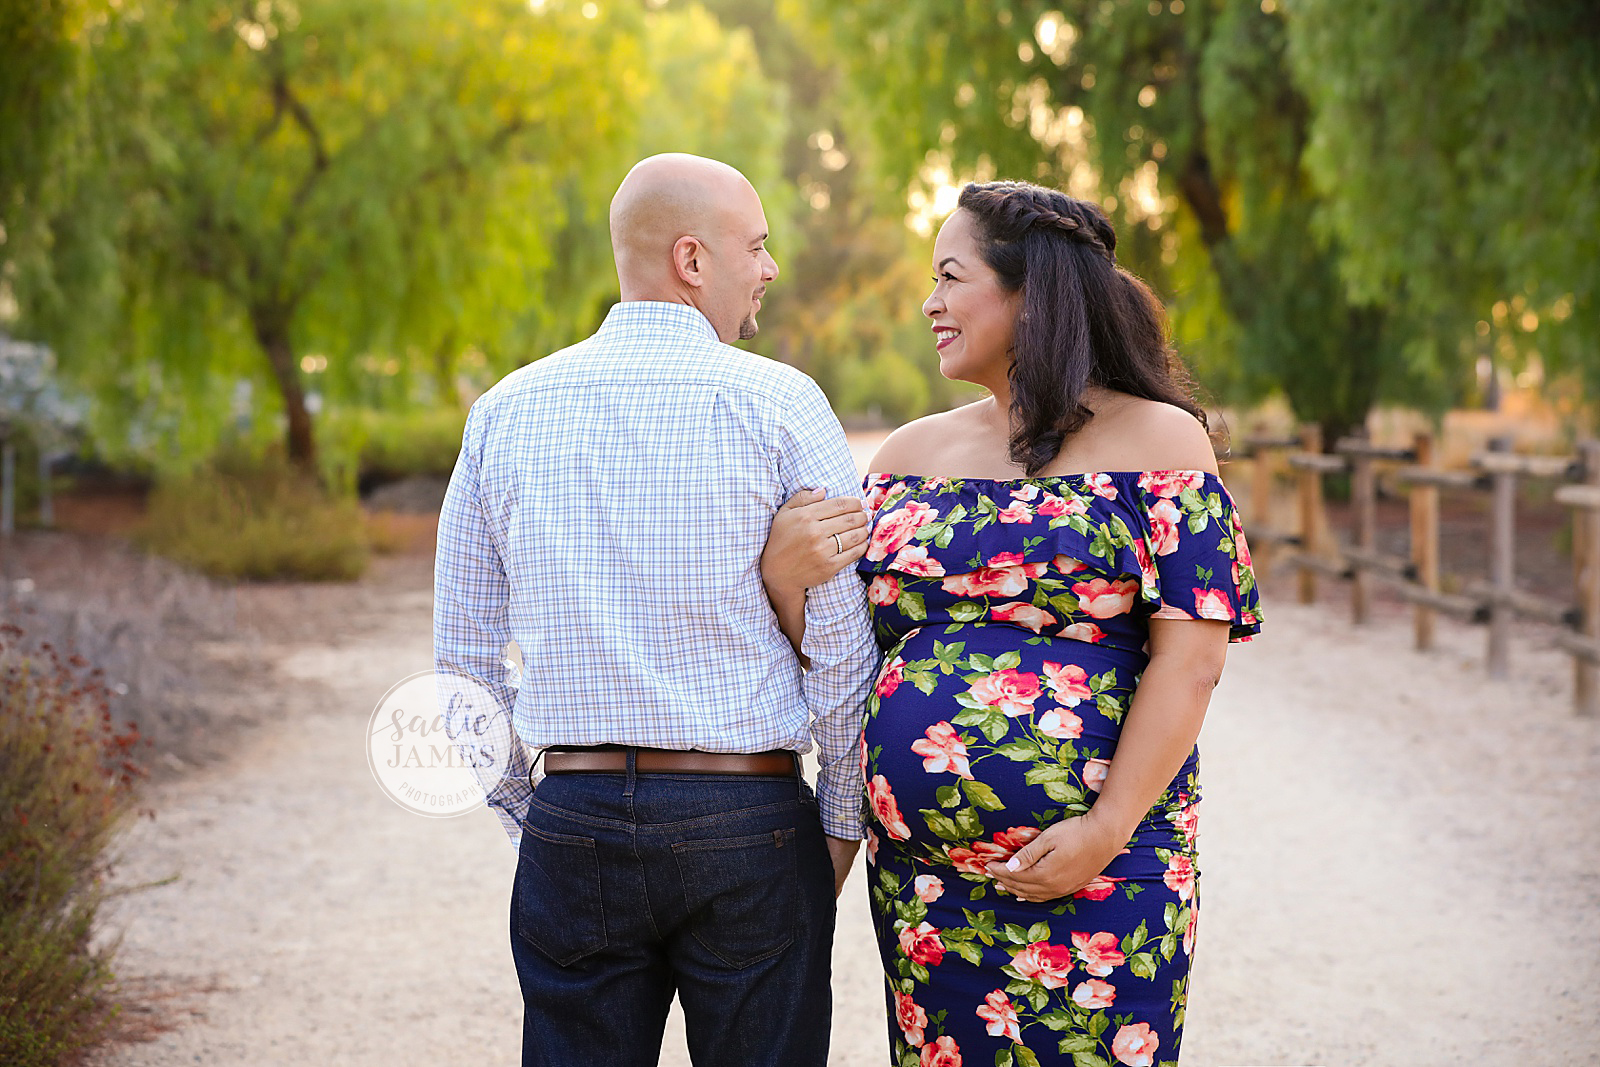 Sadie James Photography | CA maternity photographer | Orange County CA maternity photographer | Orange County maternity photographer | California maternity photographer | California maternity photographer | expecting mother, parenthood, motherhood